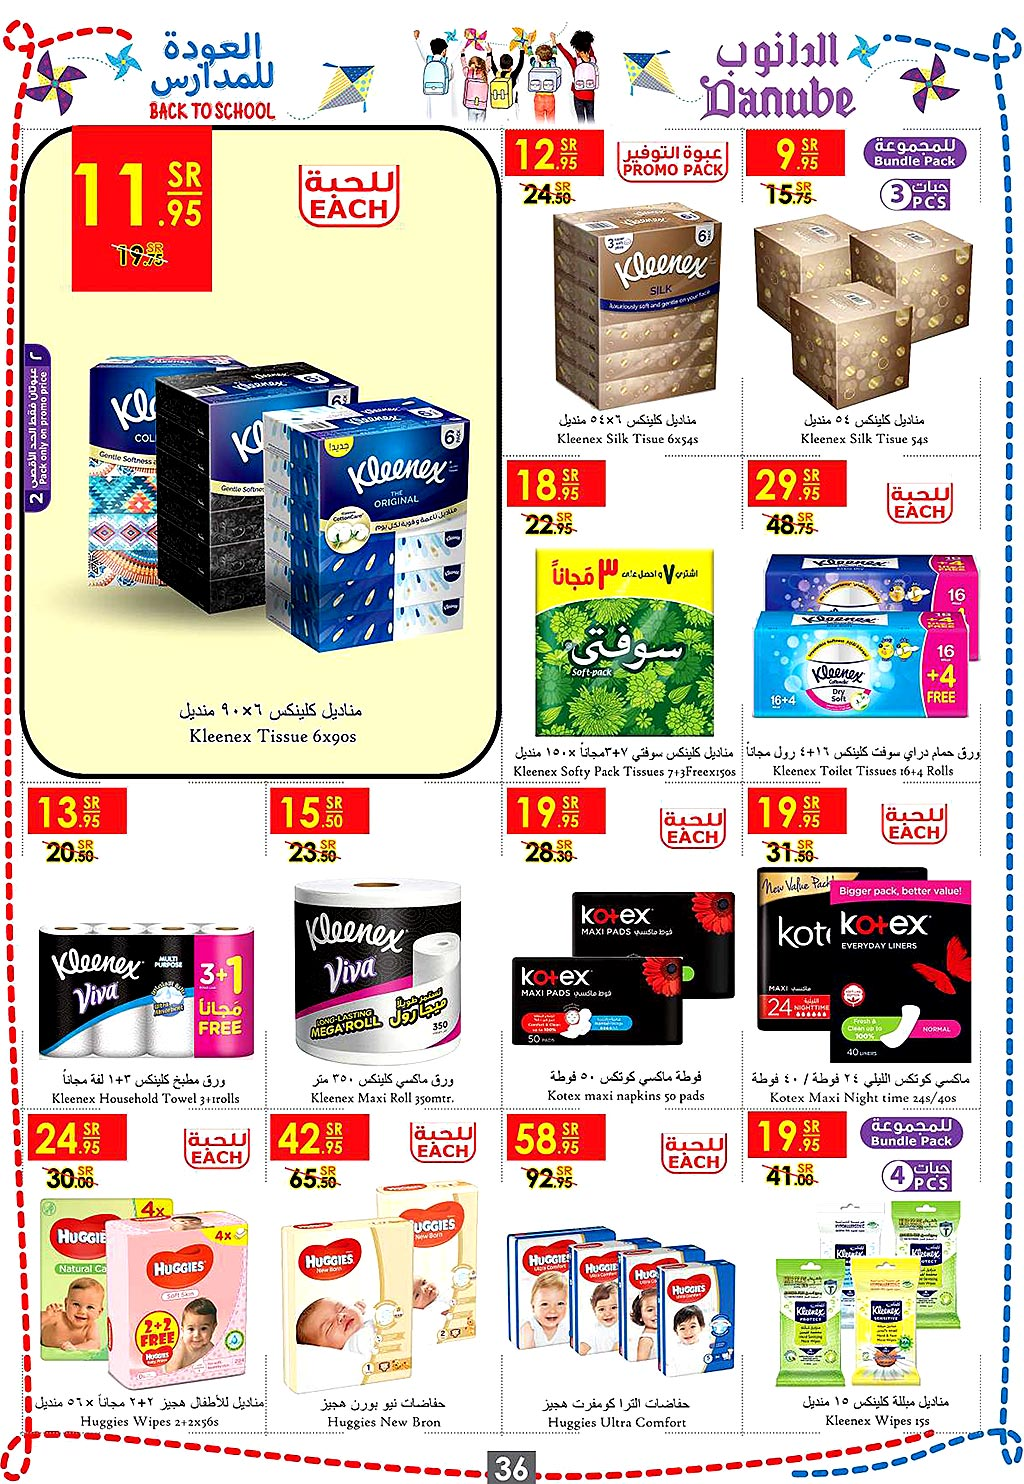 danube offers from 7aug to 21aug 2019 page number 35 عروض الدانوب من 7 أغسطس حتى 21 أغسطس 2019 صفحة رقم 35